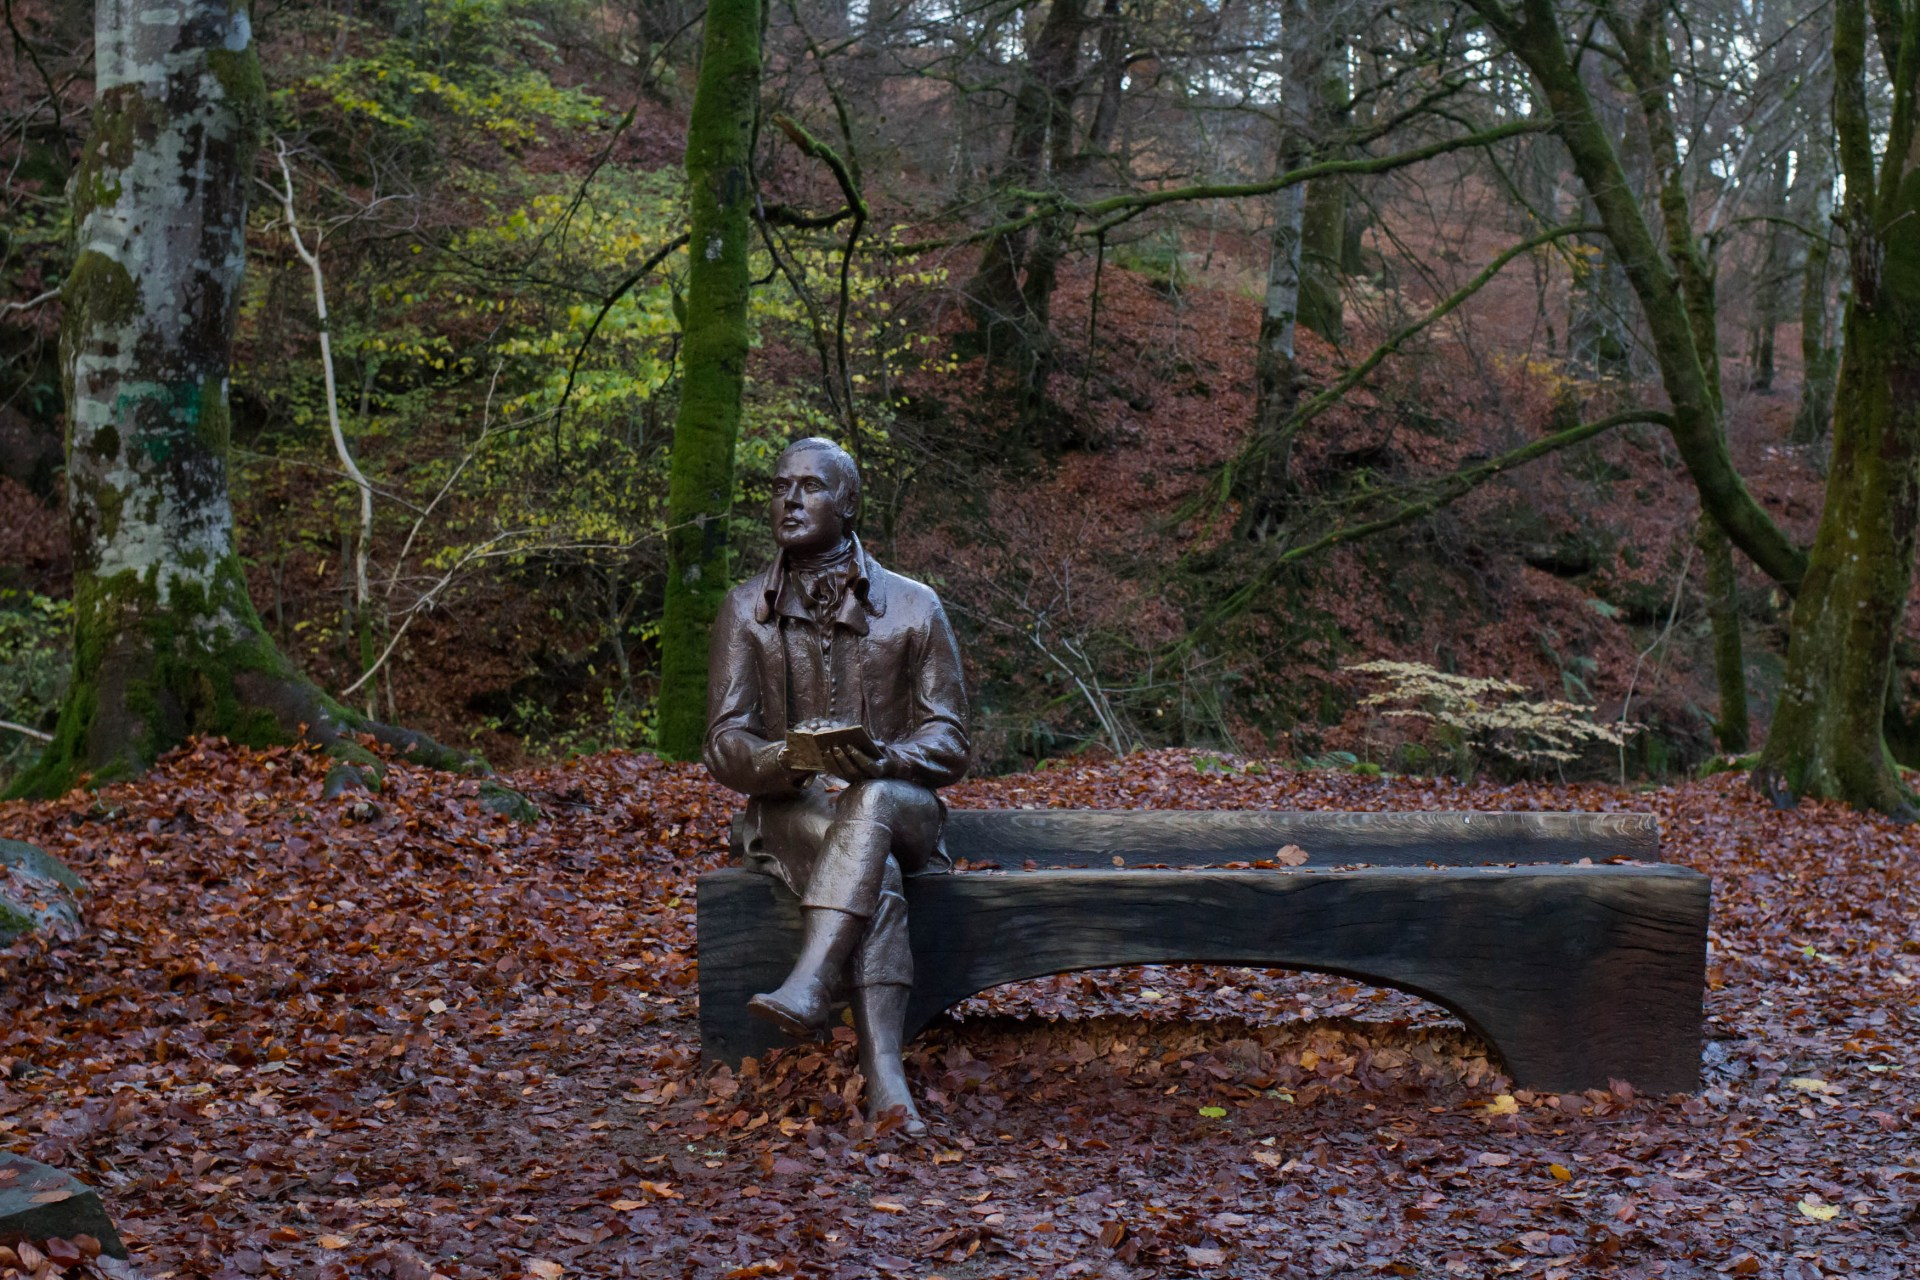 Robert Burns statue. He sits of a bench in the woods